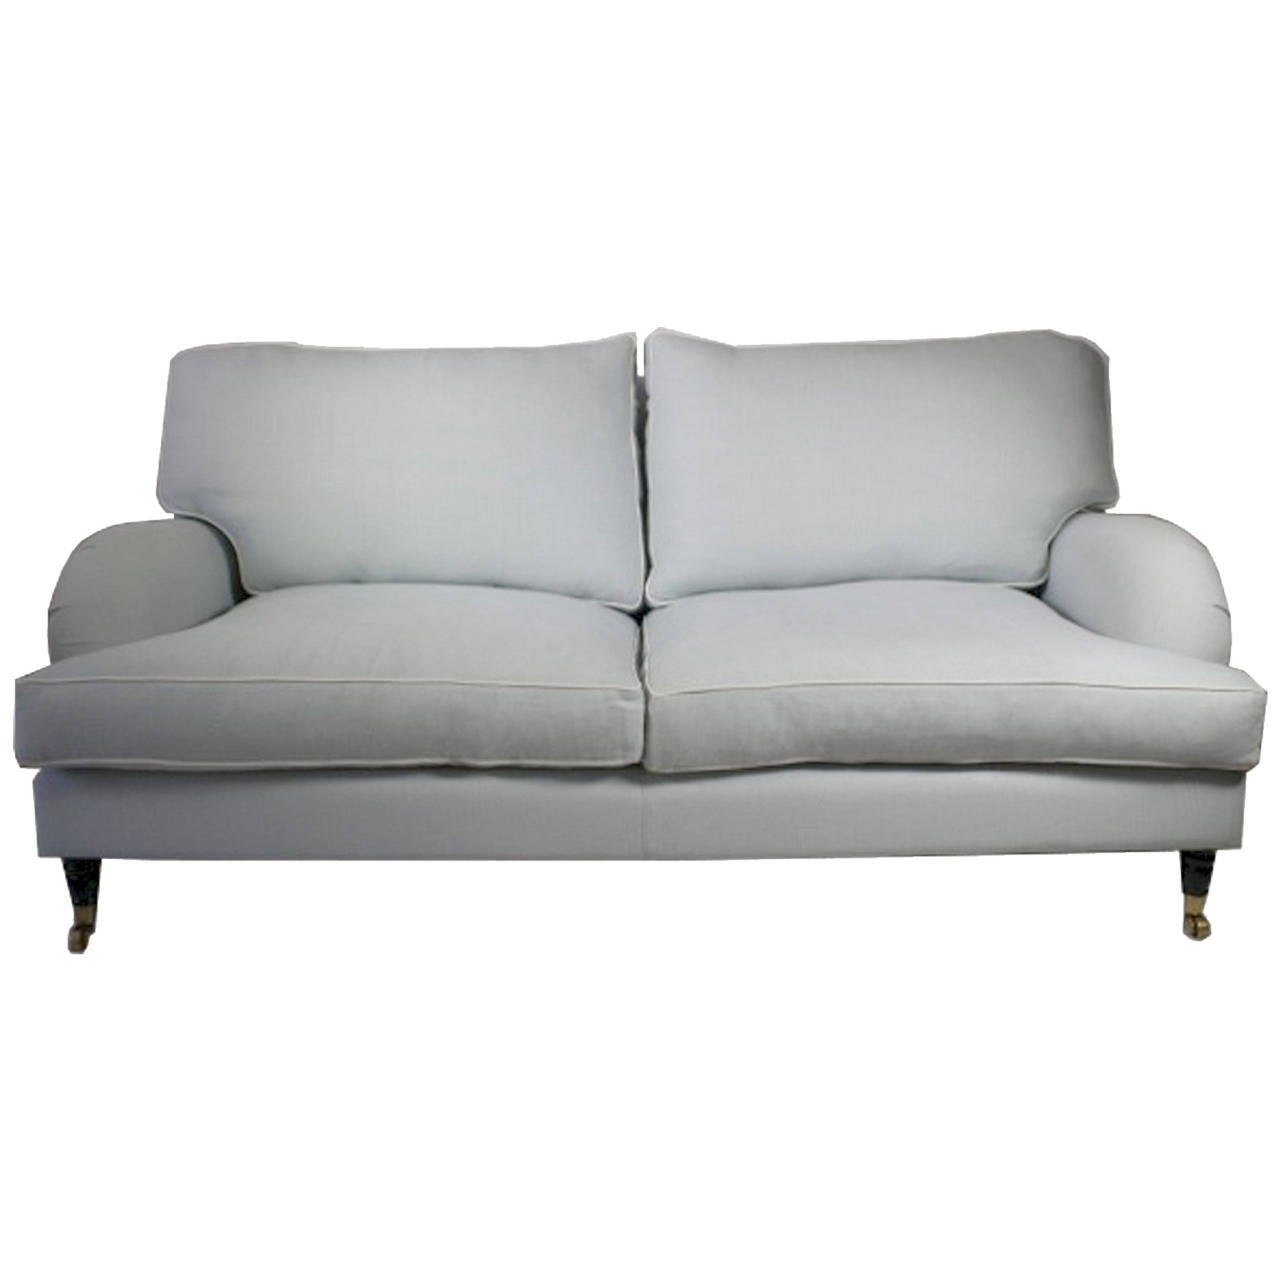 Linen sofa by coco republic at 1stdibs for Furniture republic